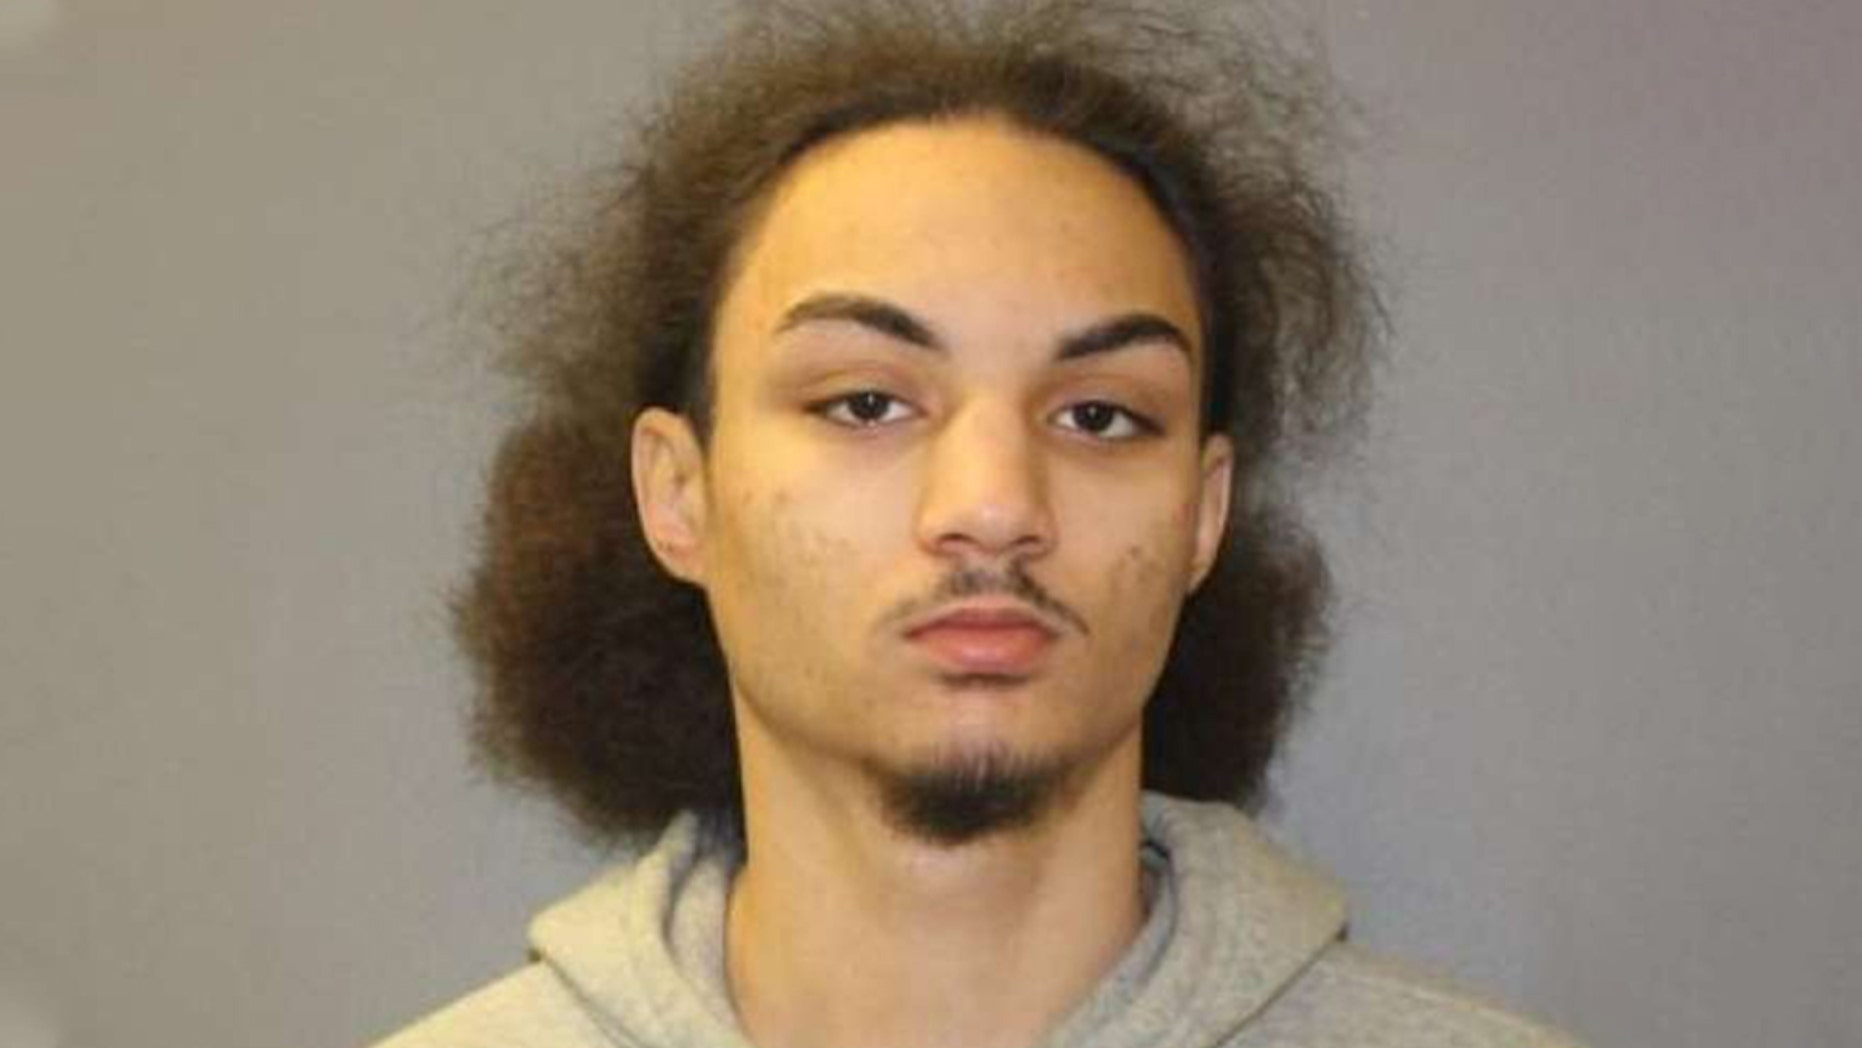 Naji Deneutte, 18, of Hamden, Connecticut, allegedly punctured a major artery in a woman's neck in front of her two children who are 11 and 12 years old. (Hamden Police Department)